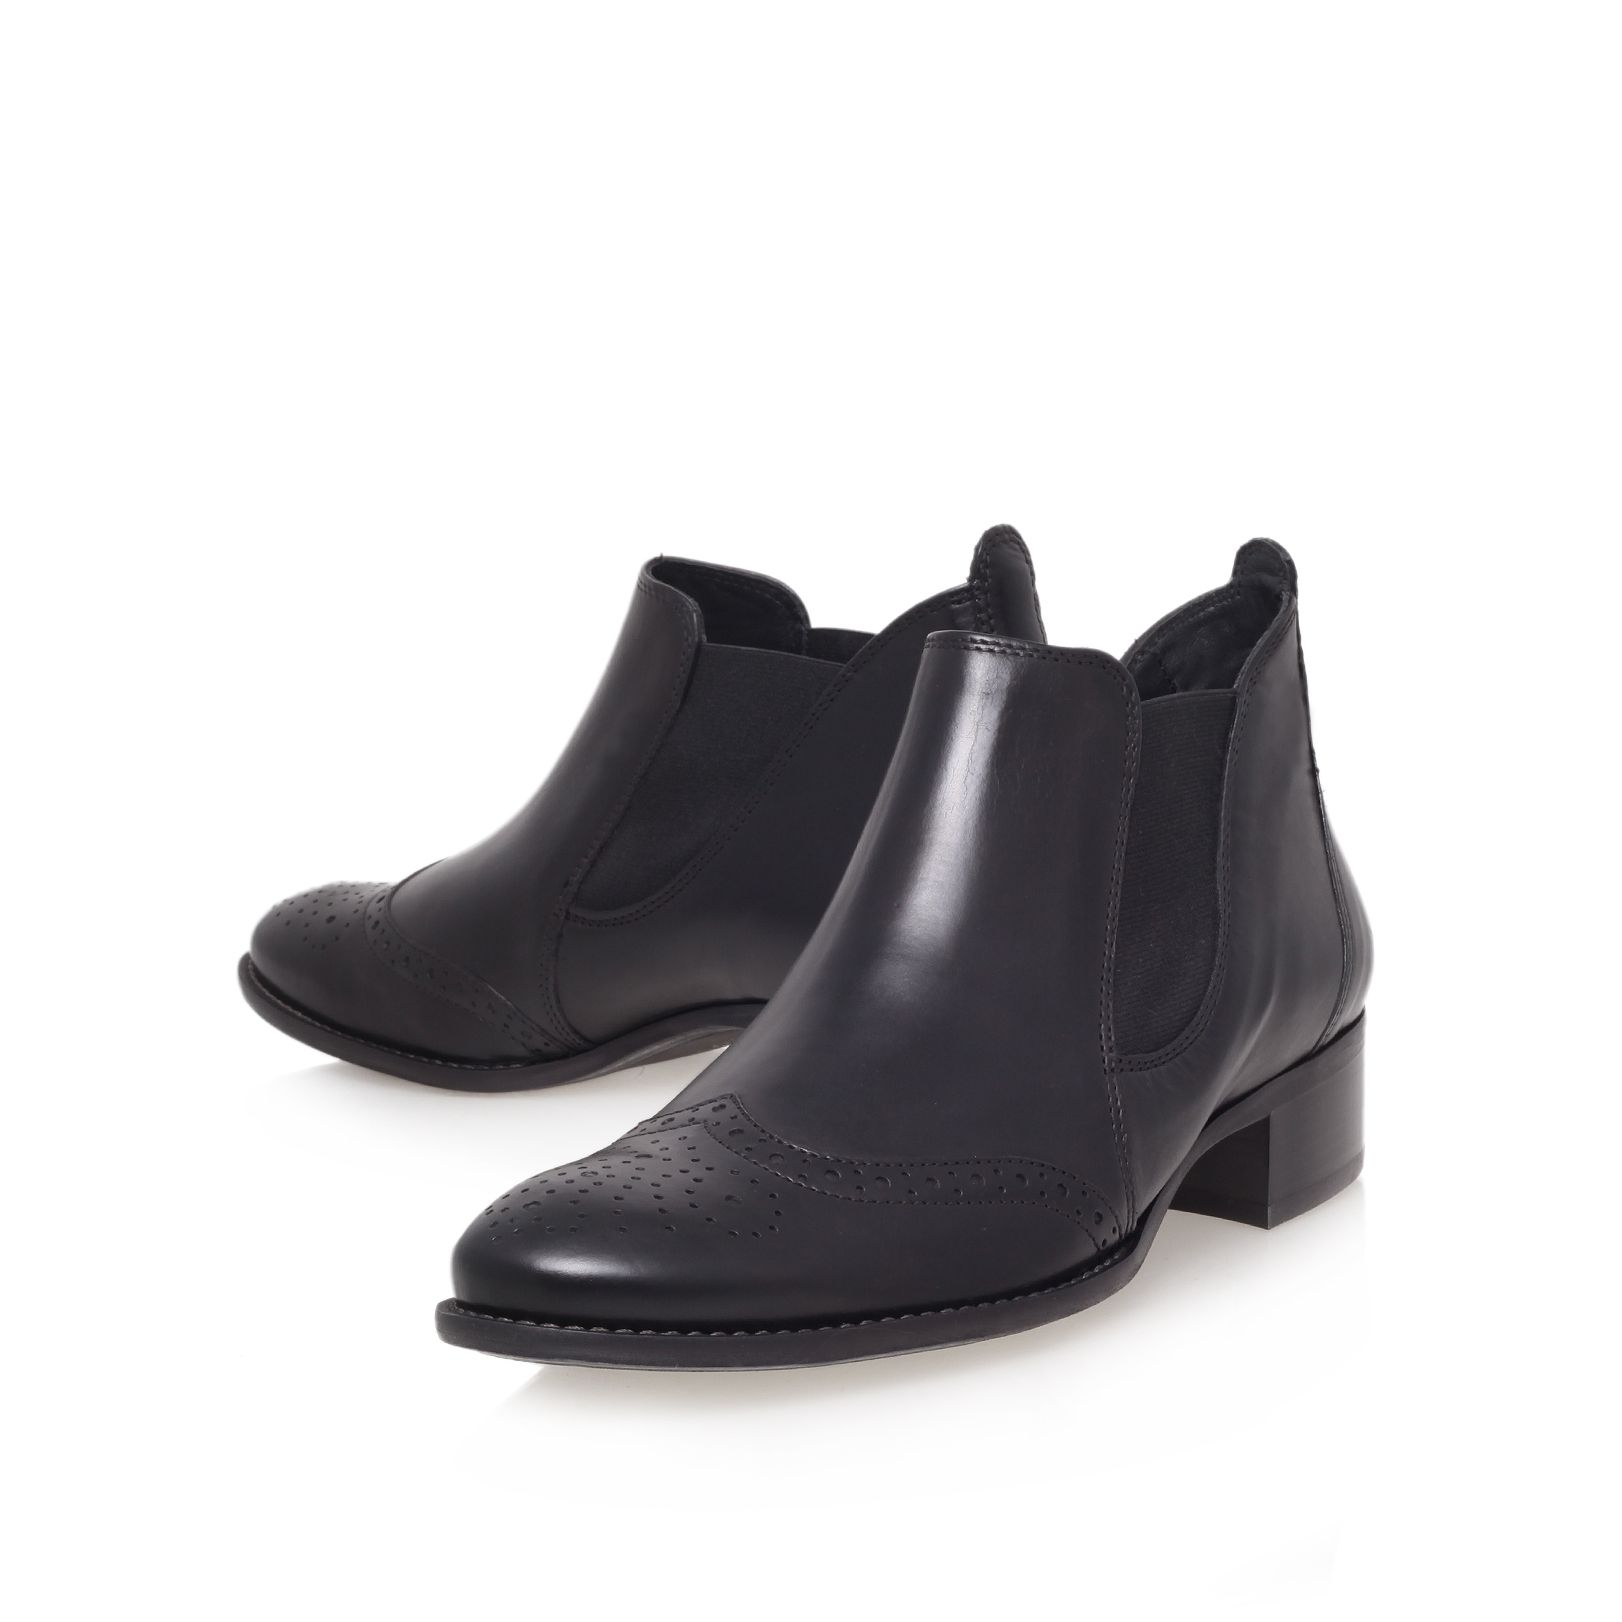 Carly ankle boot